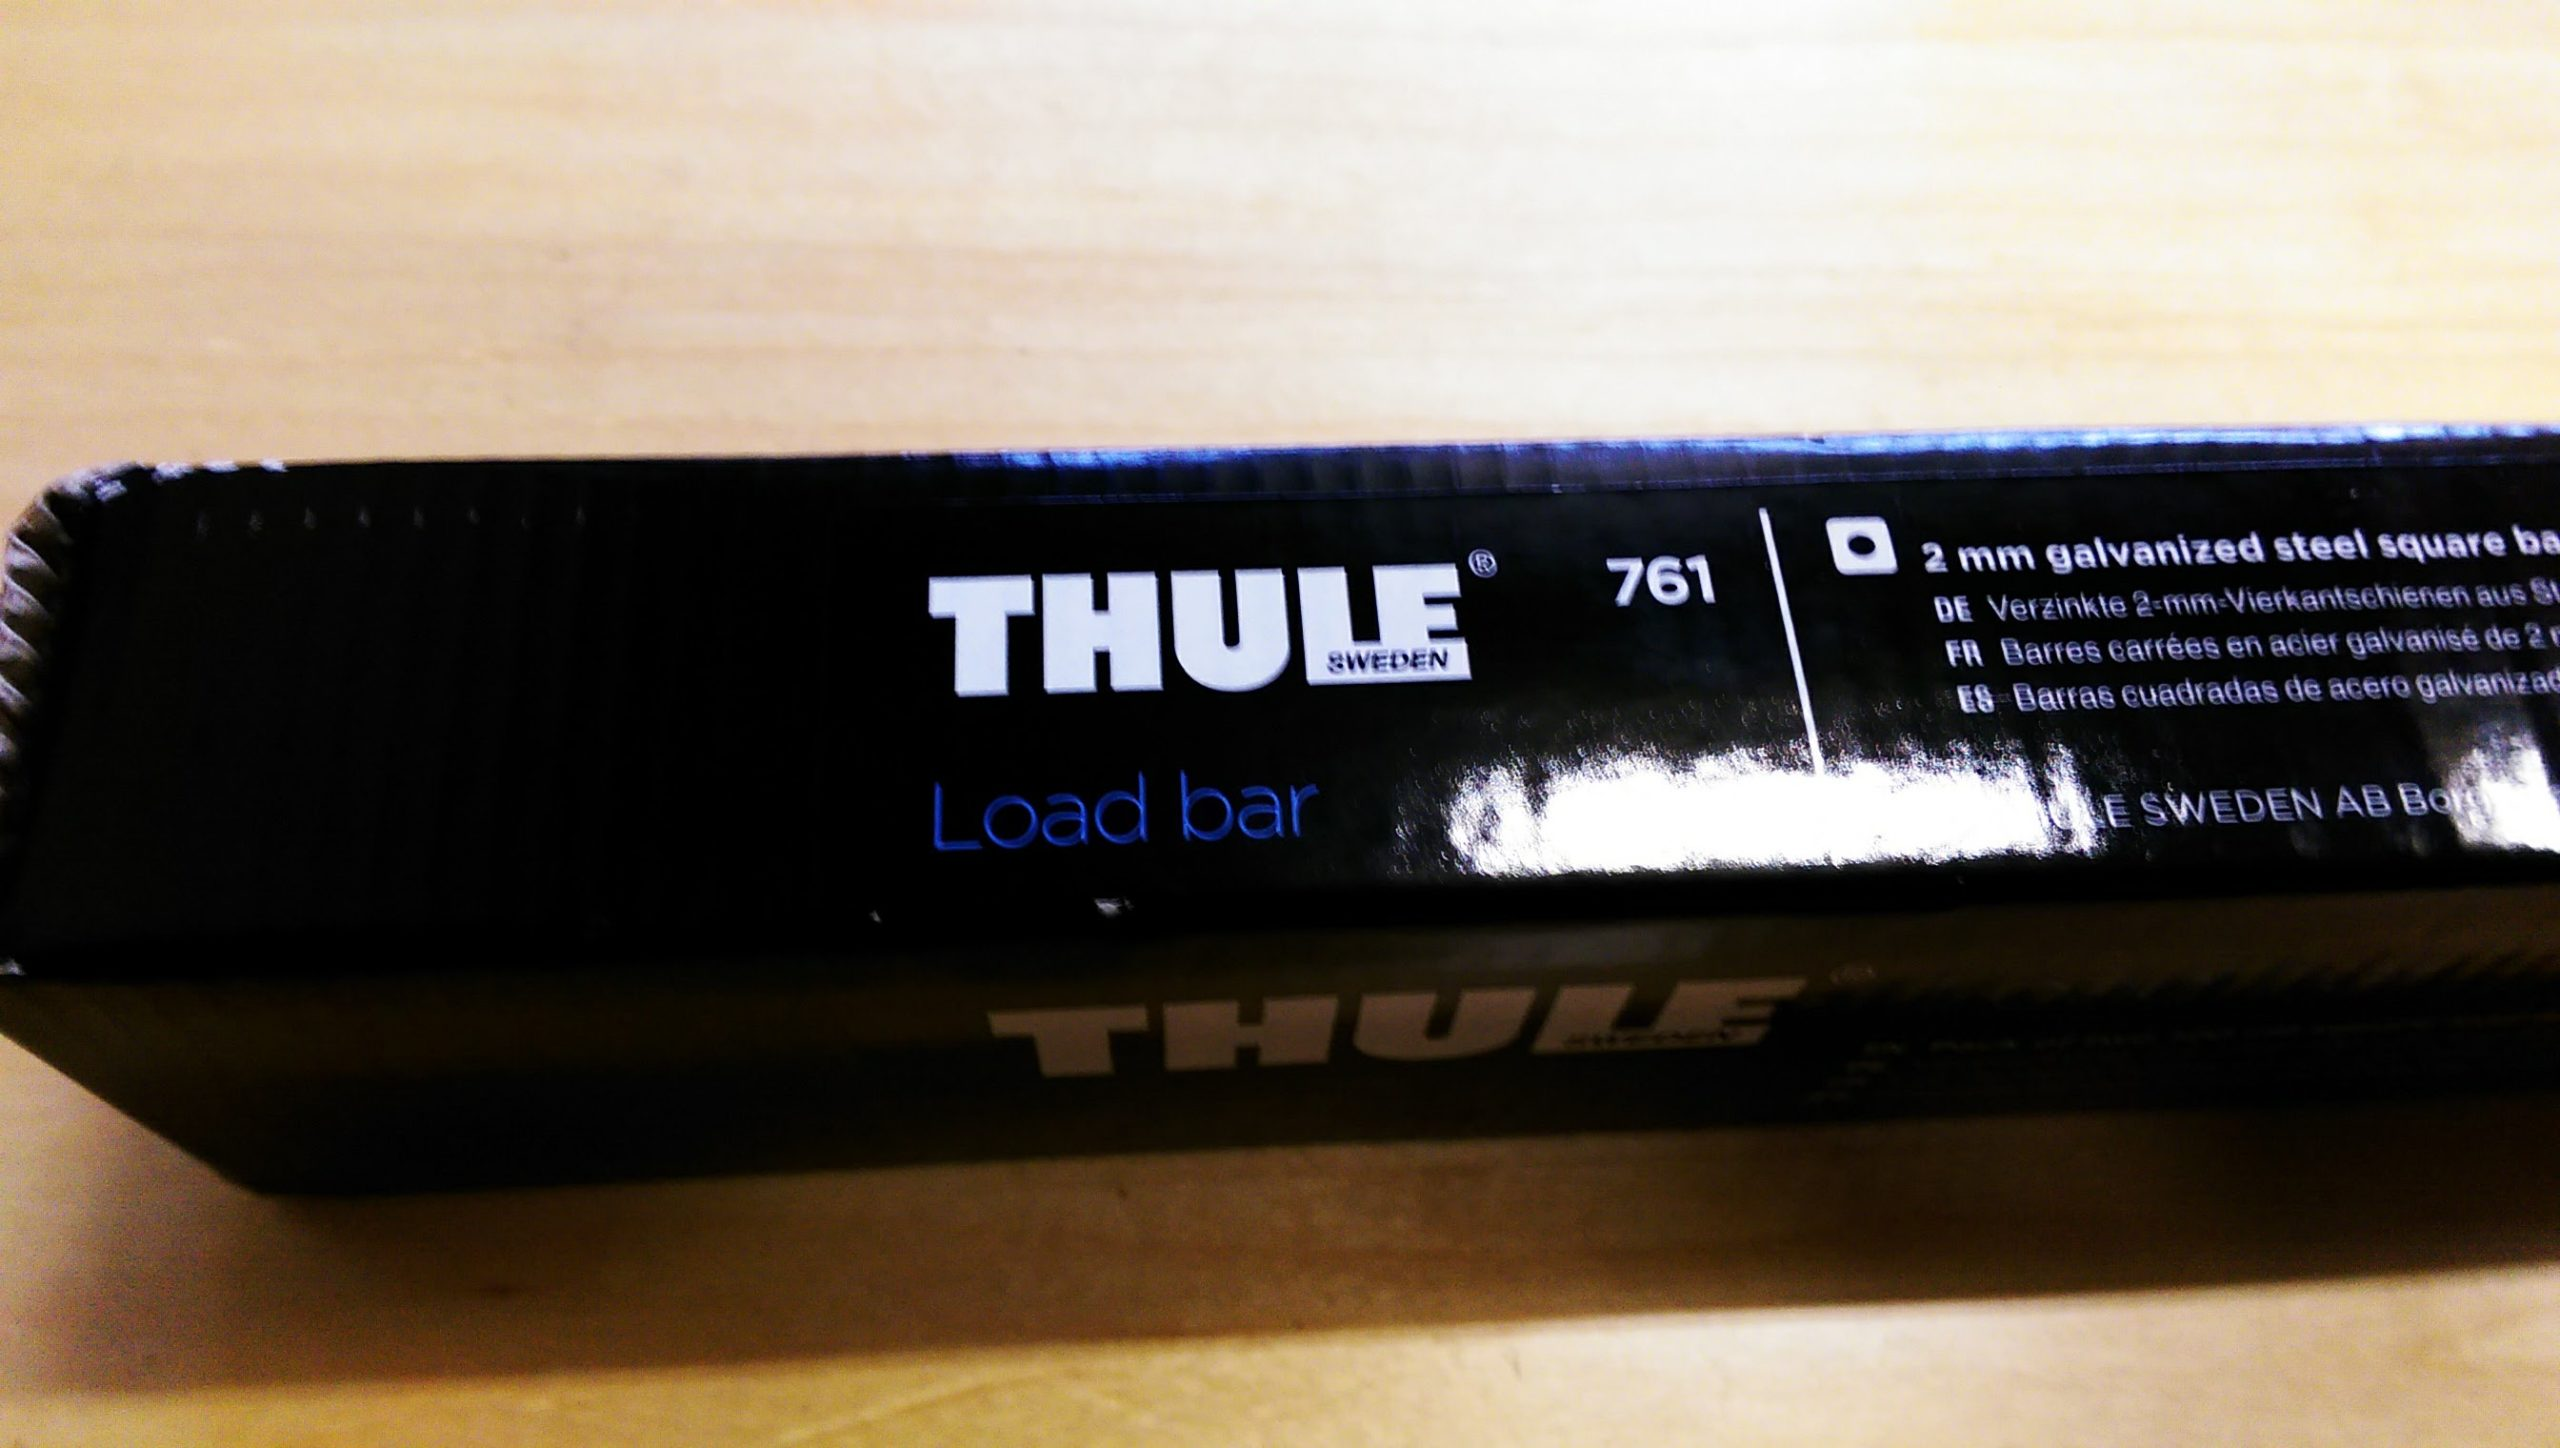 Thule dakdragers BMW 3 serie touring 2012>